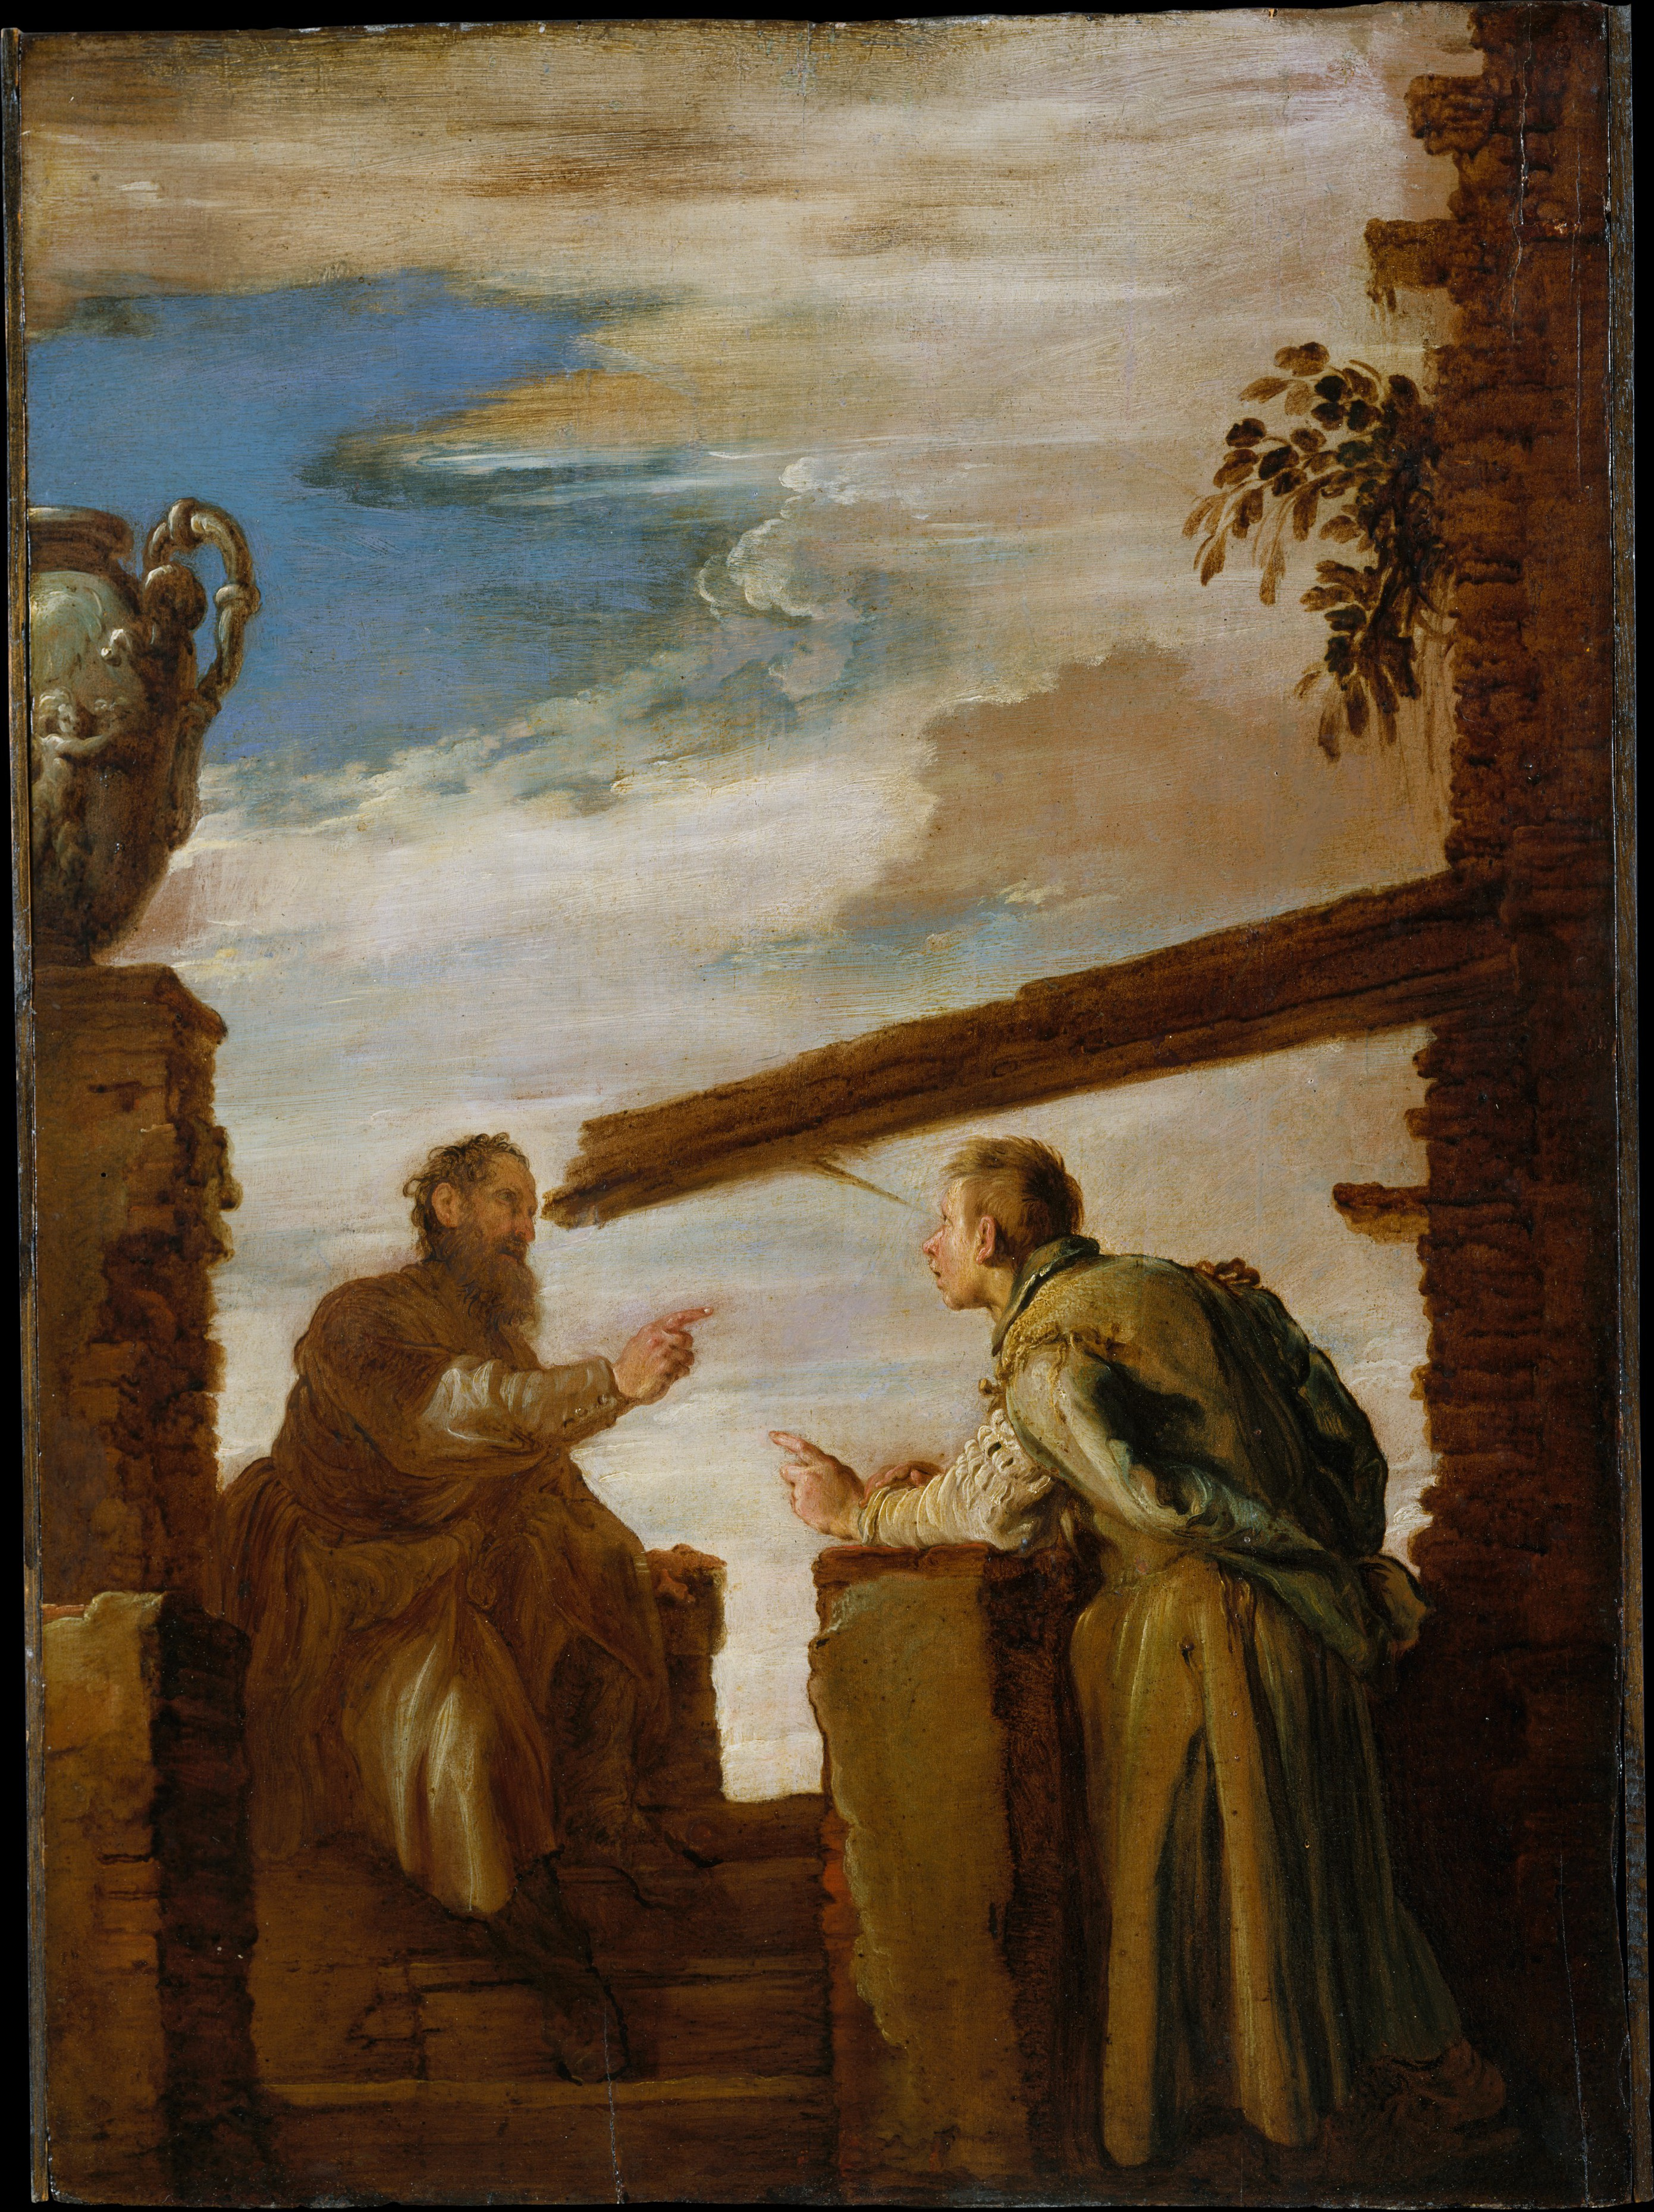 The Parable of the Mote and the Beam, by Domenico Fetti, c. 1619. Metropolitan Museum of Art, New York New York, United States. Via IllustratedPrayer.com